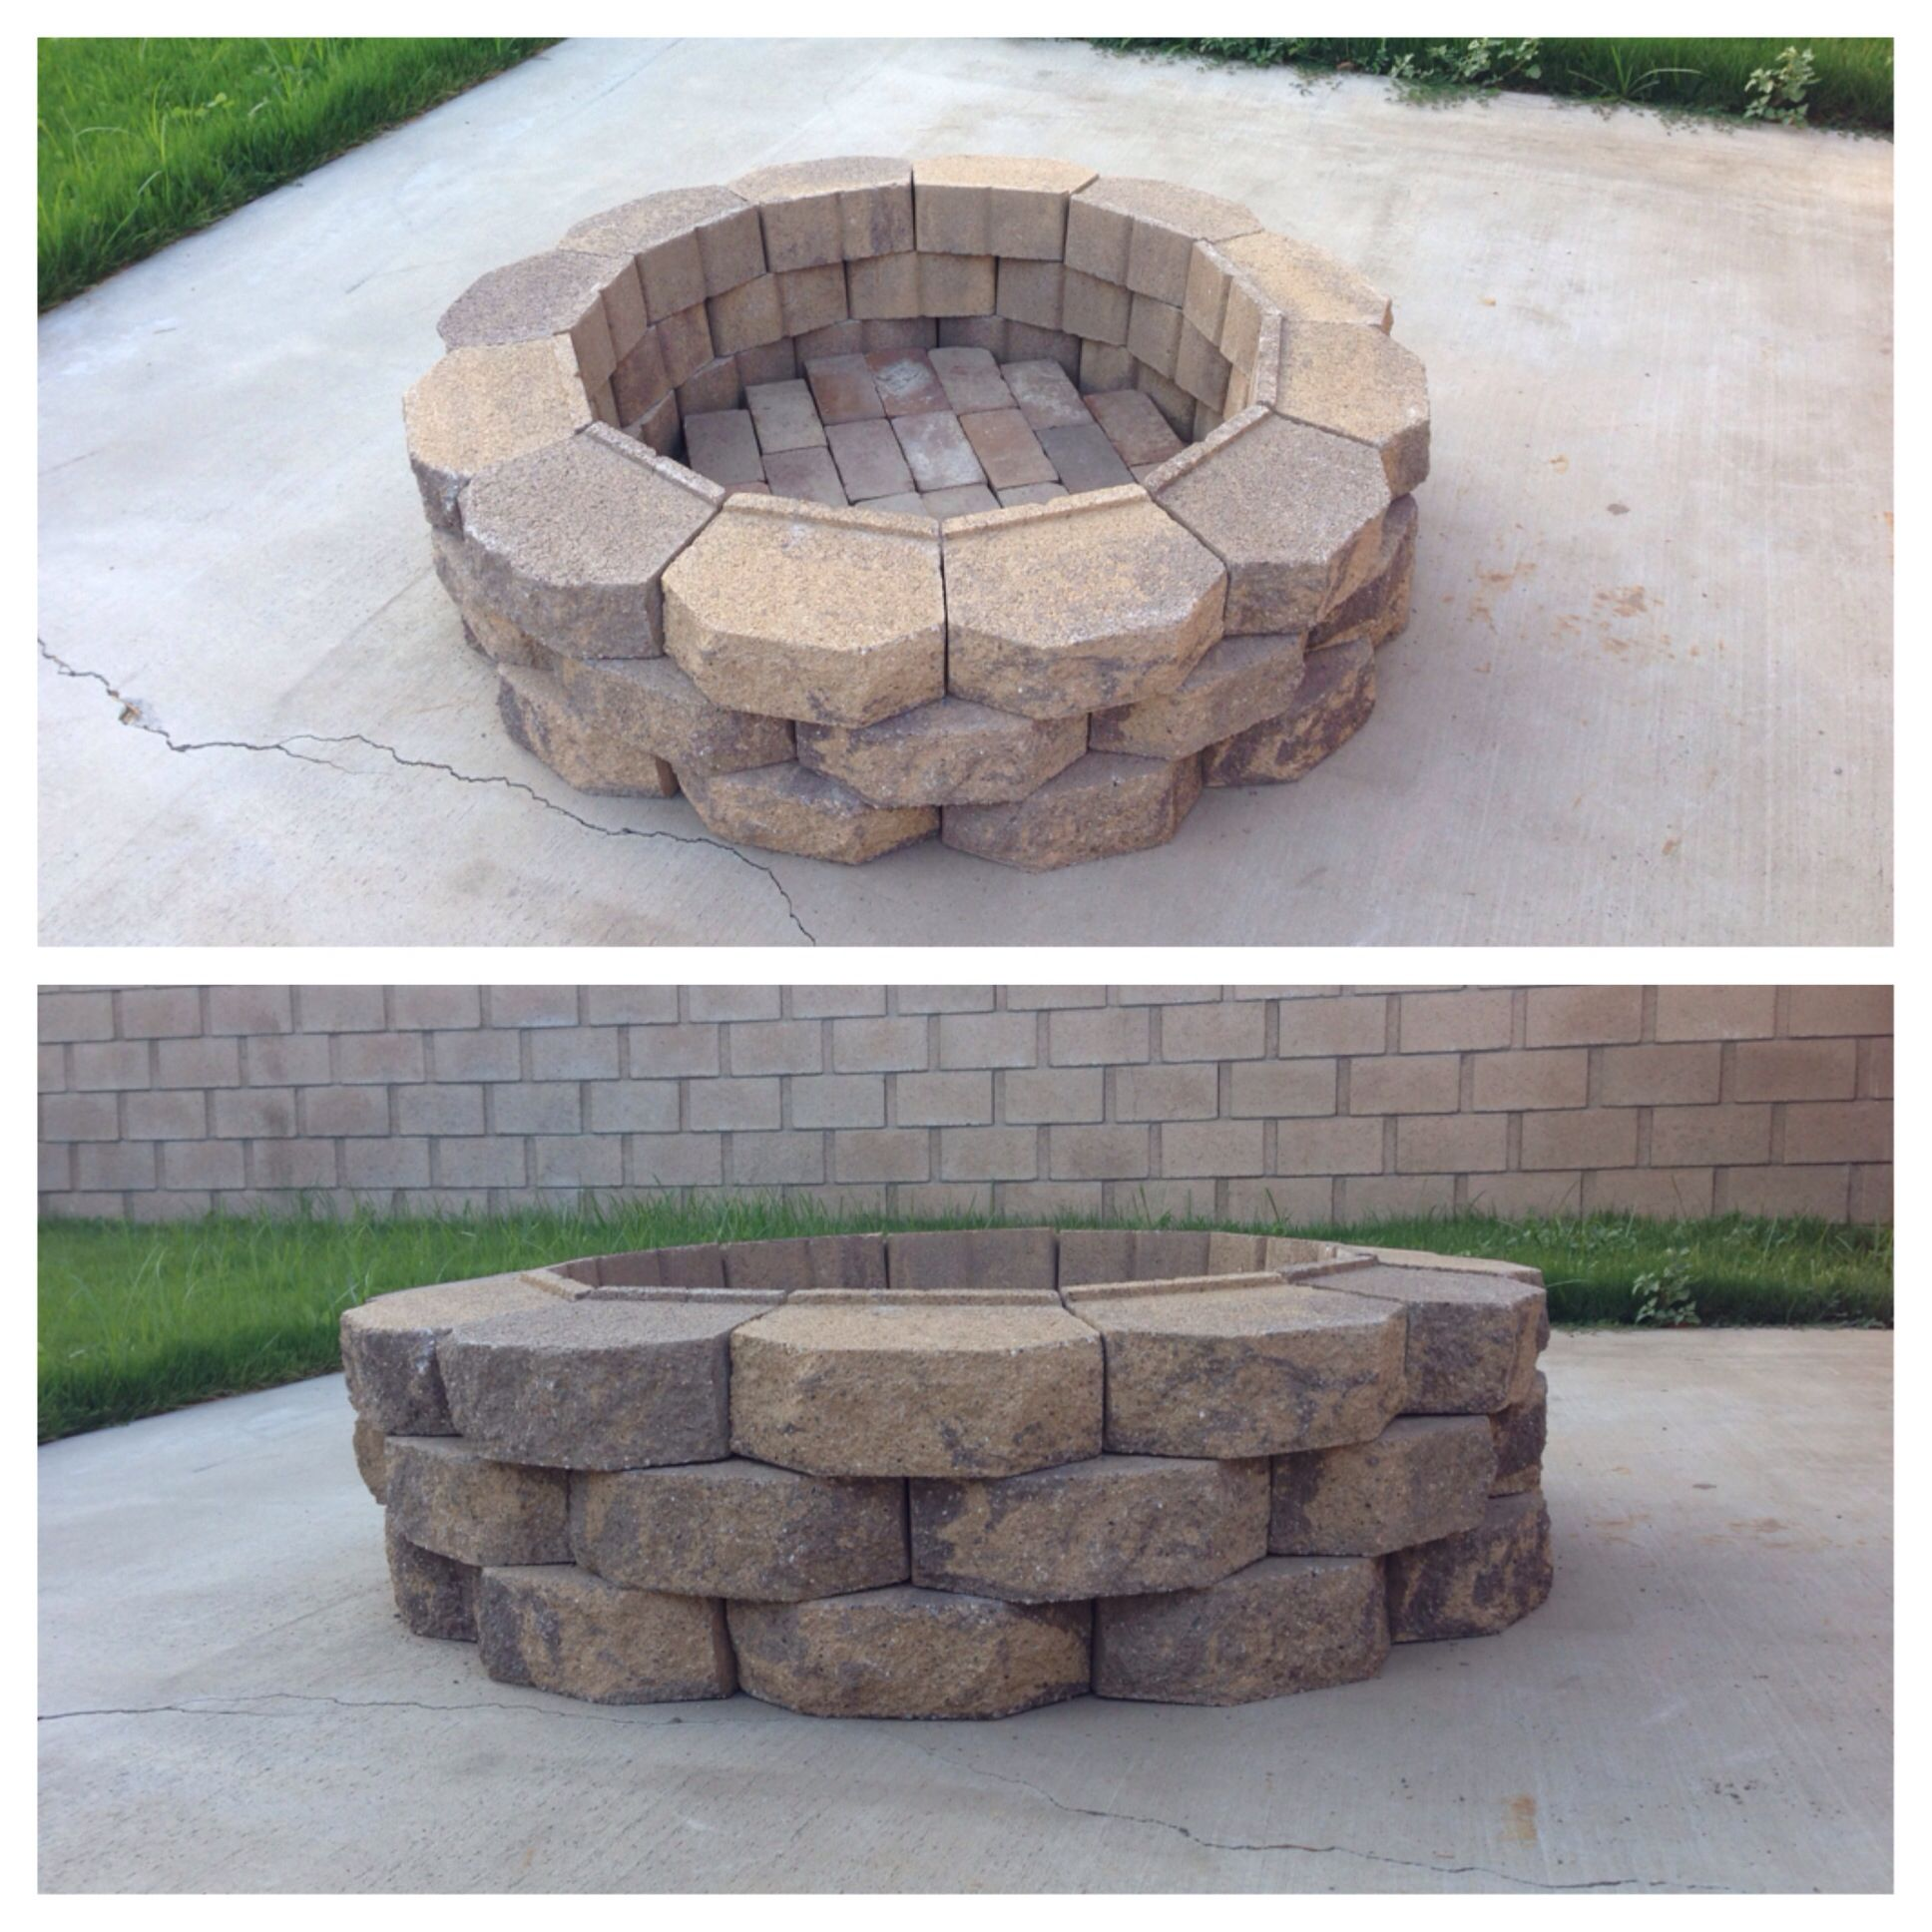 Diy Fire Pit 36 Retaining Wall Bricks Home Depot Layered Inside With Red Bricks From Yard Very Quick And Si Fire Pit Decor Fire Pit Backyard Backyard Fire